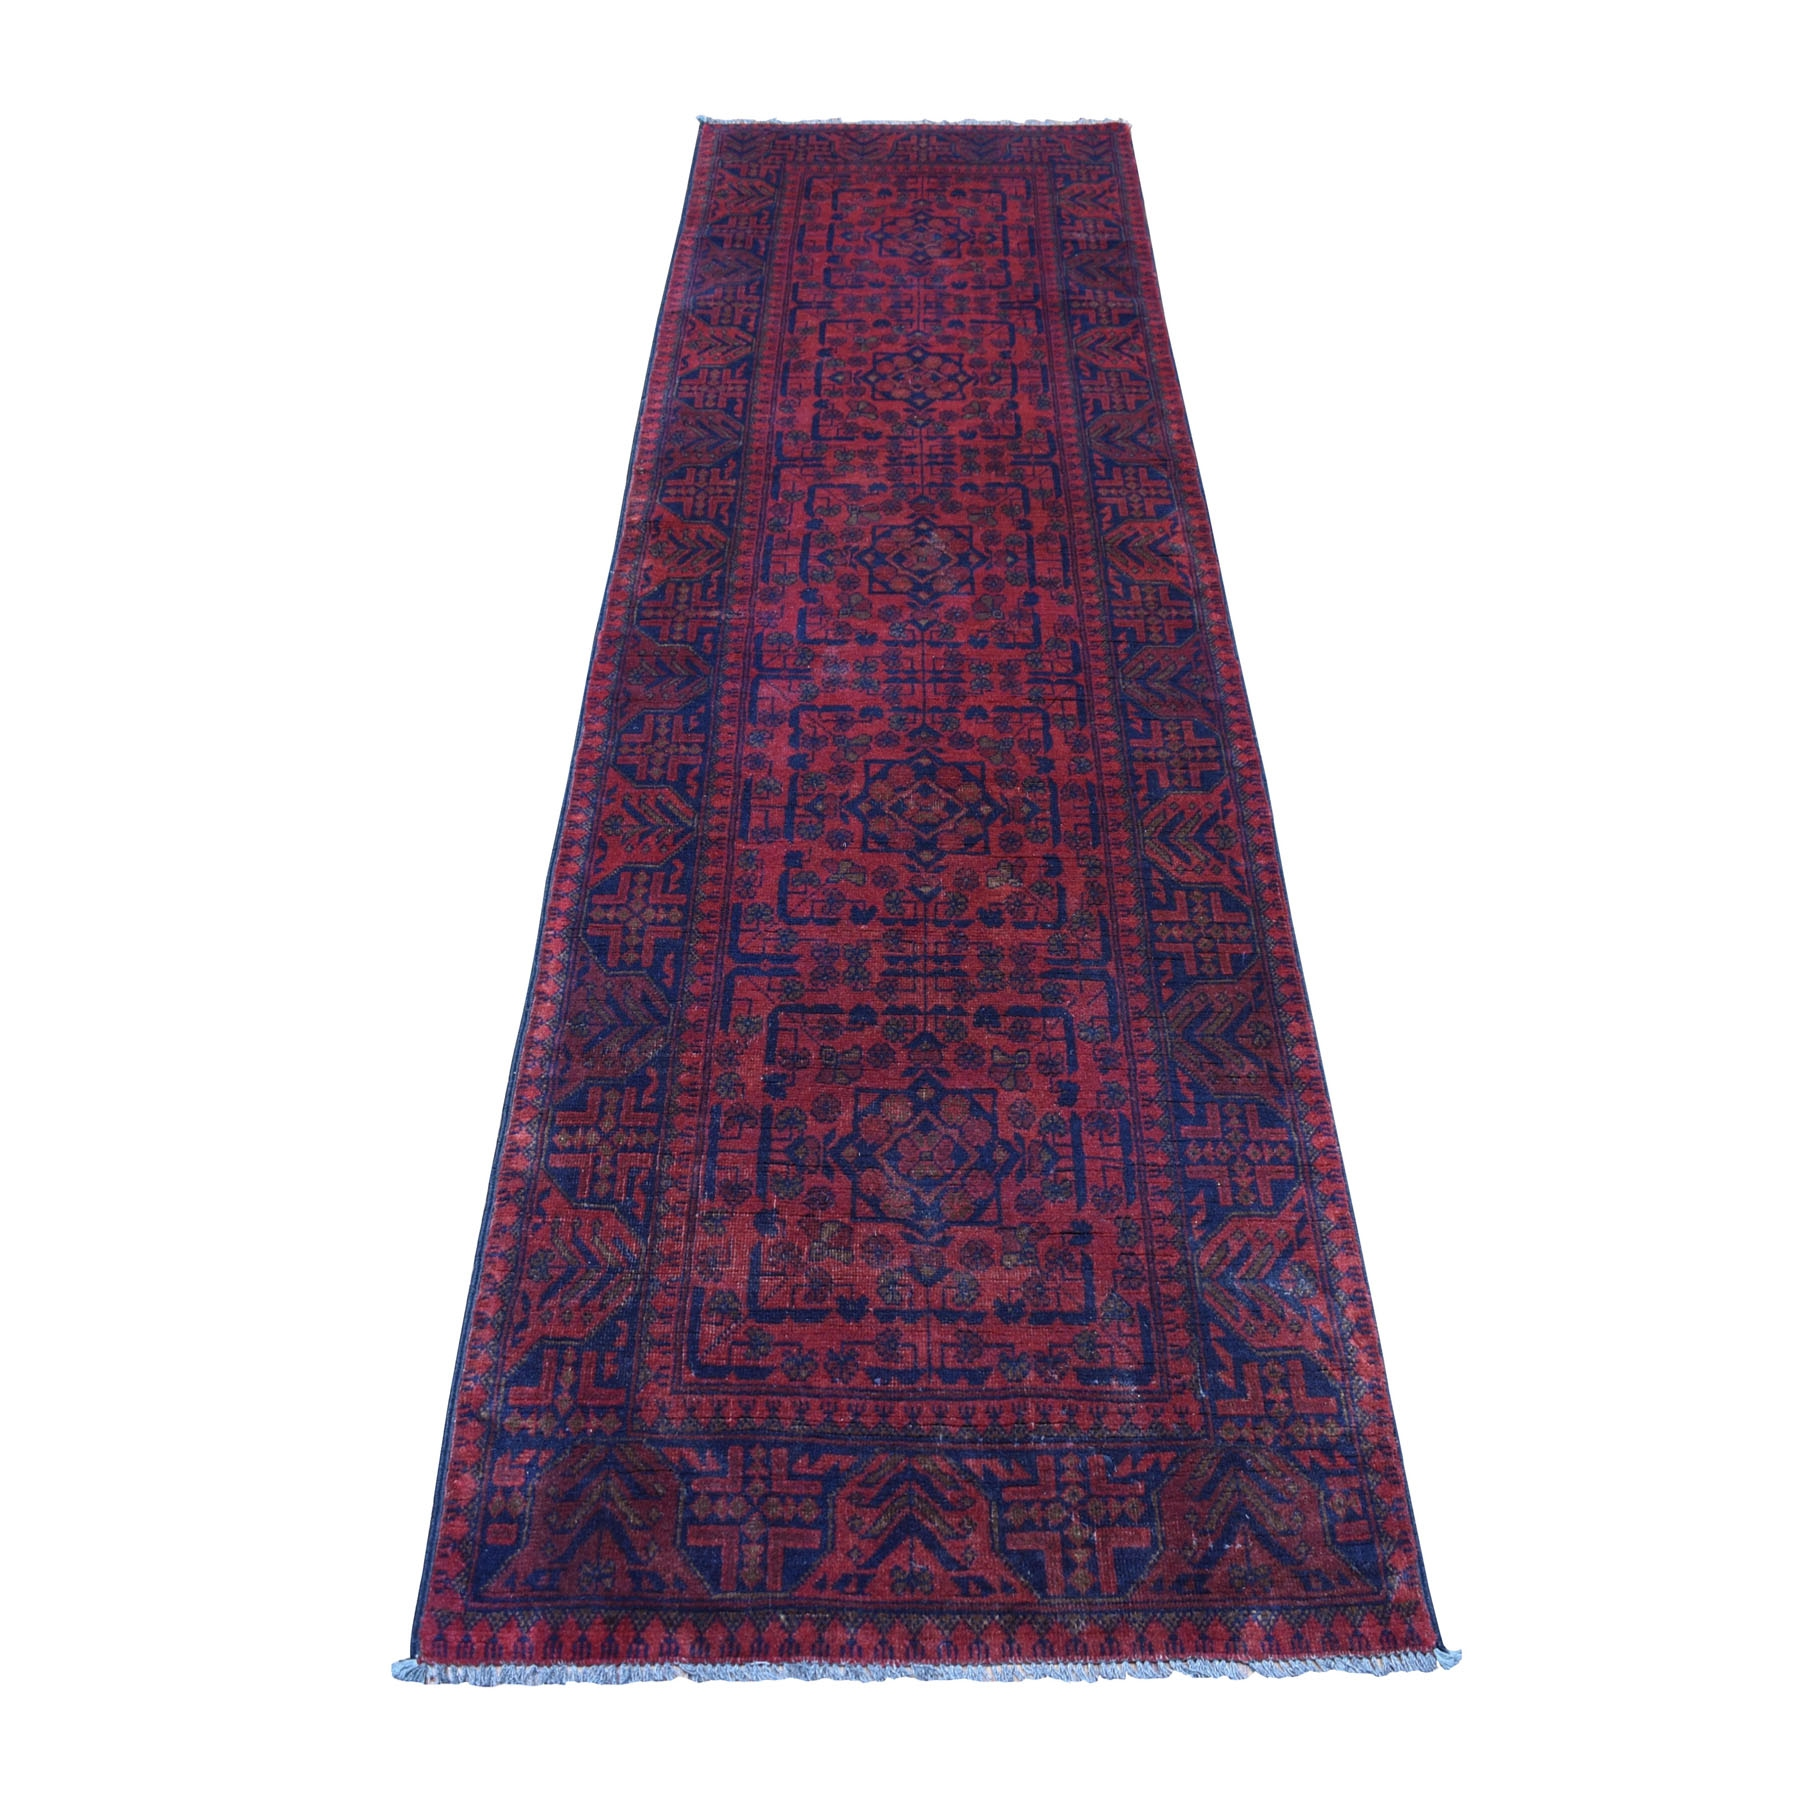 "2'7""X9'6"" Deep And Saturated Red Geometric Afghan Andkhoy Runner Pure Wool Hand Knotted Oriental Rug moaec766"